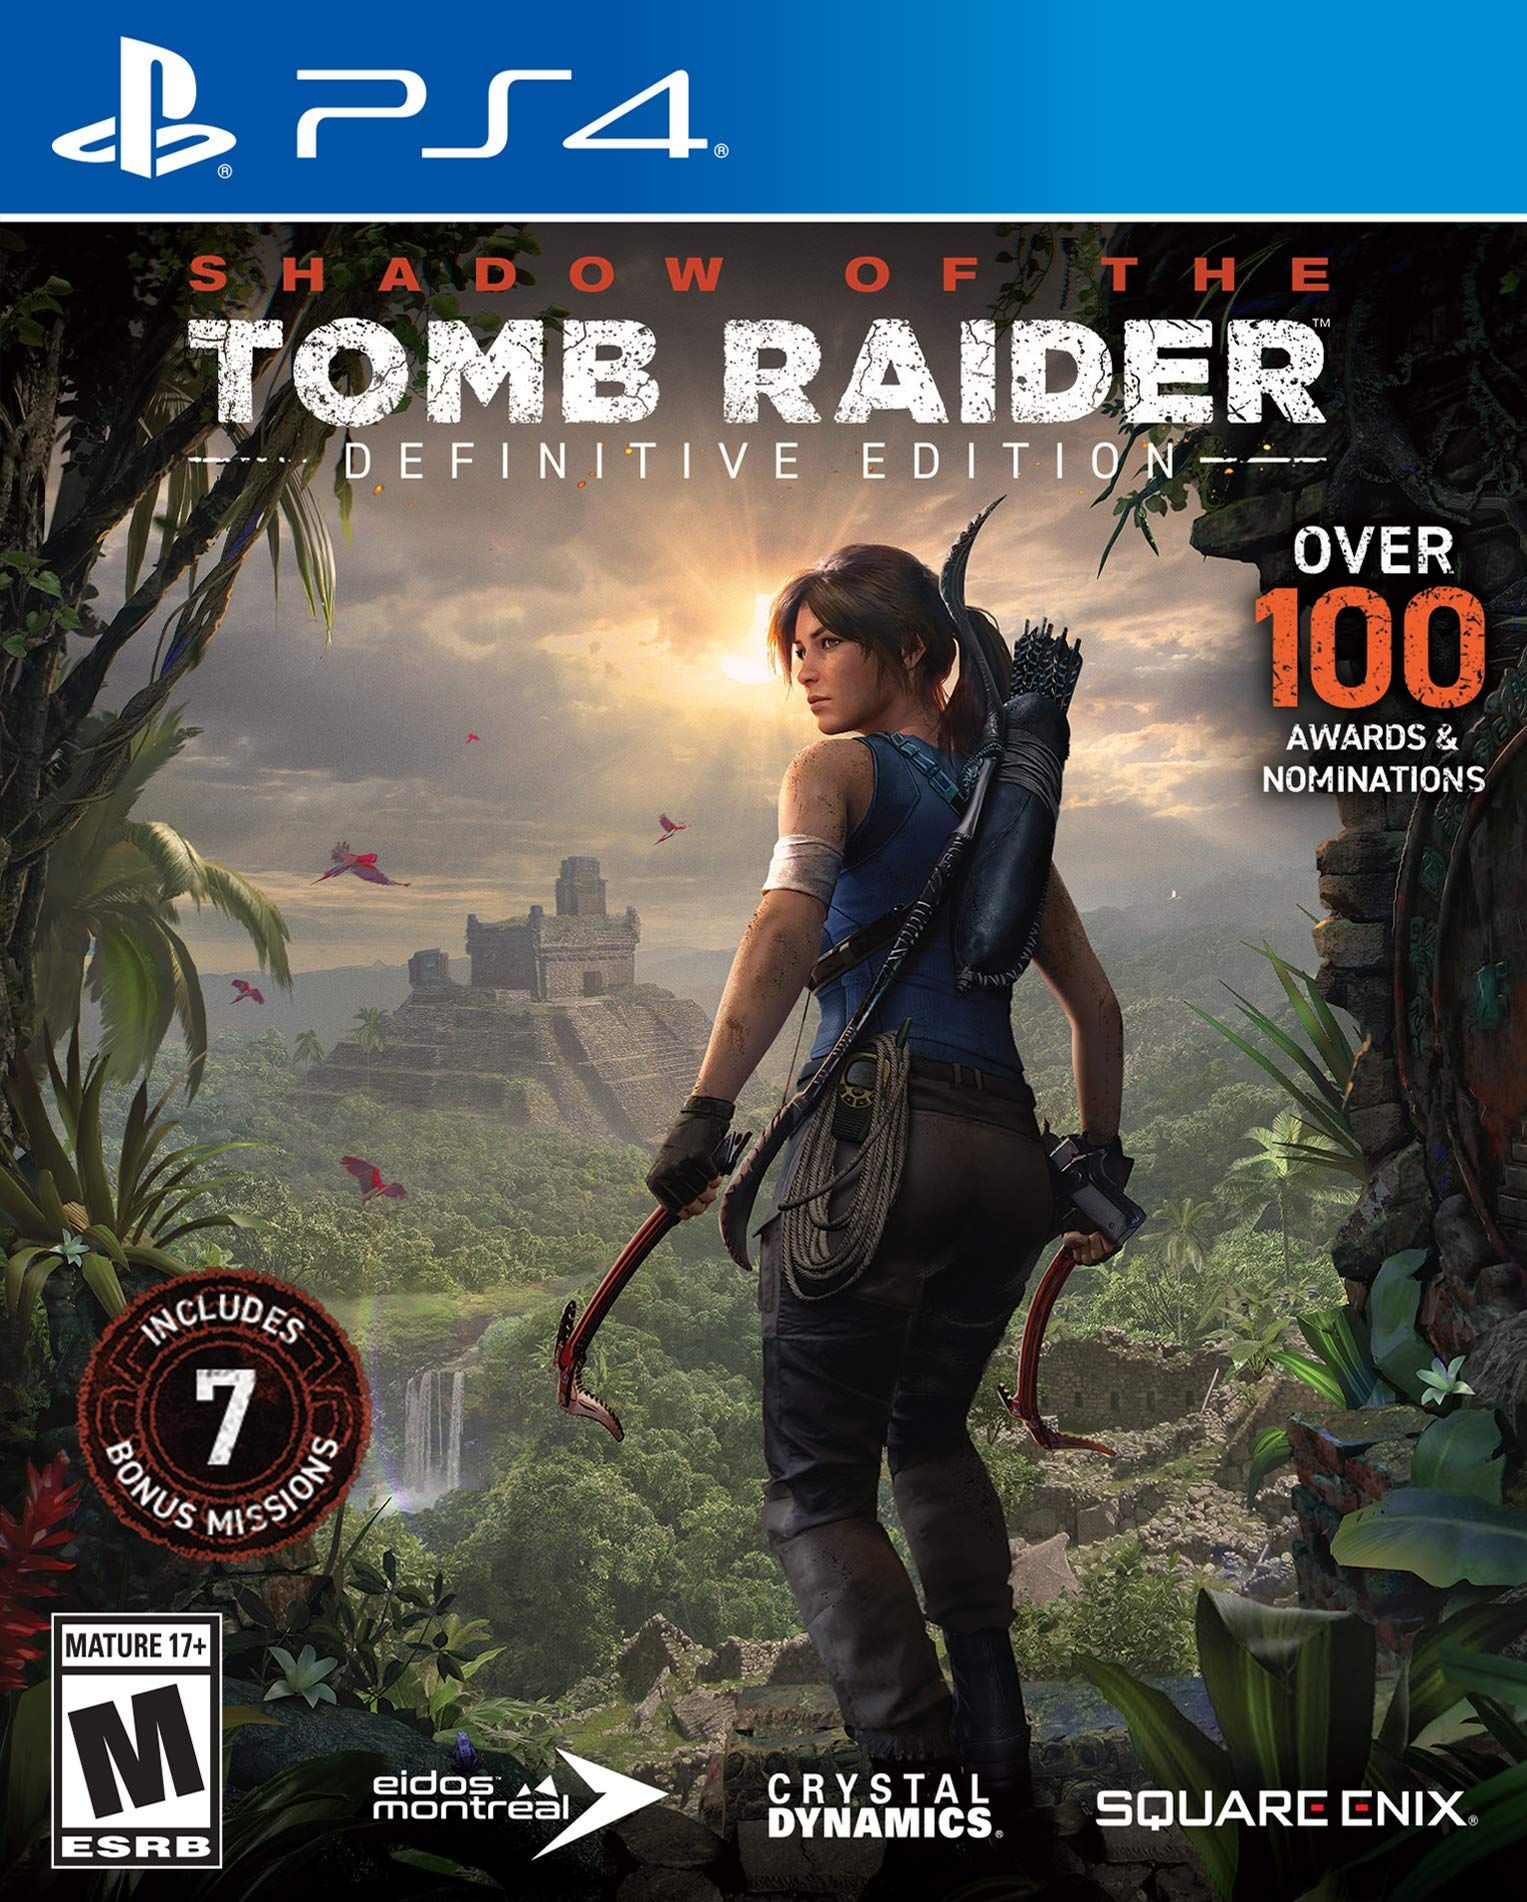 Shadow of the Tomb Raider - Definitive Edition [PS4] 5.05 / 6.72 / 7.02 [EUR] (2018) [Русский] (v2.00)